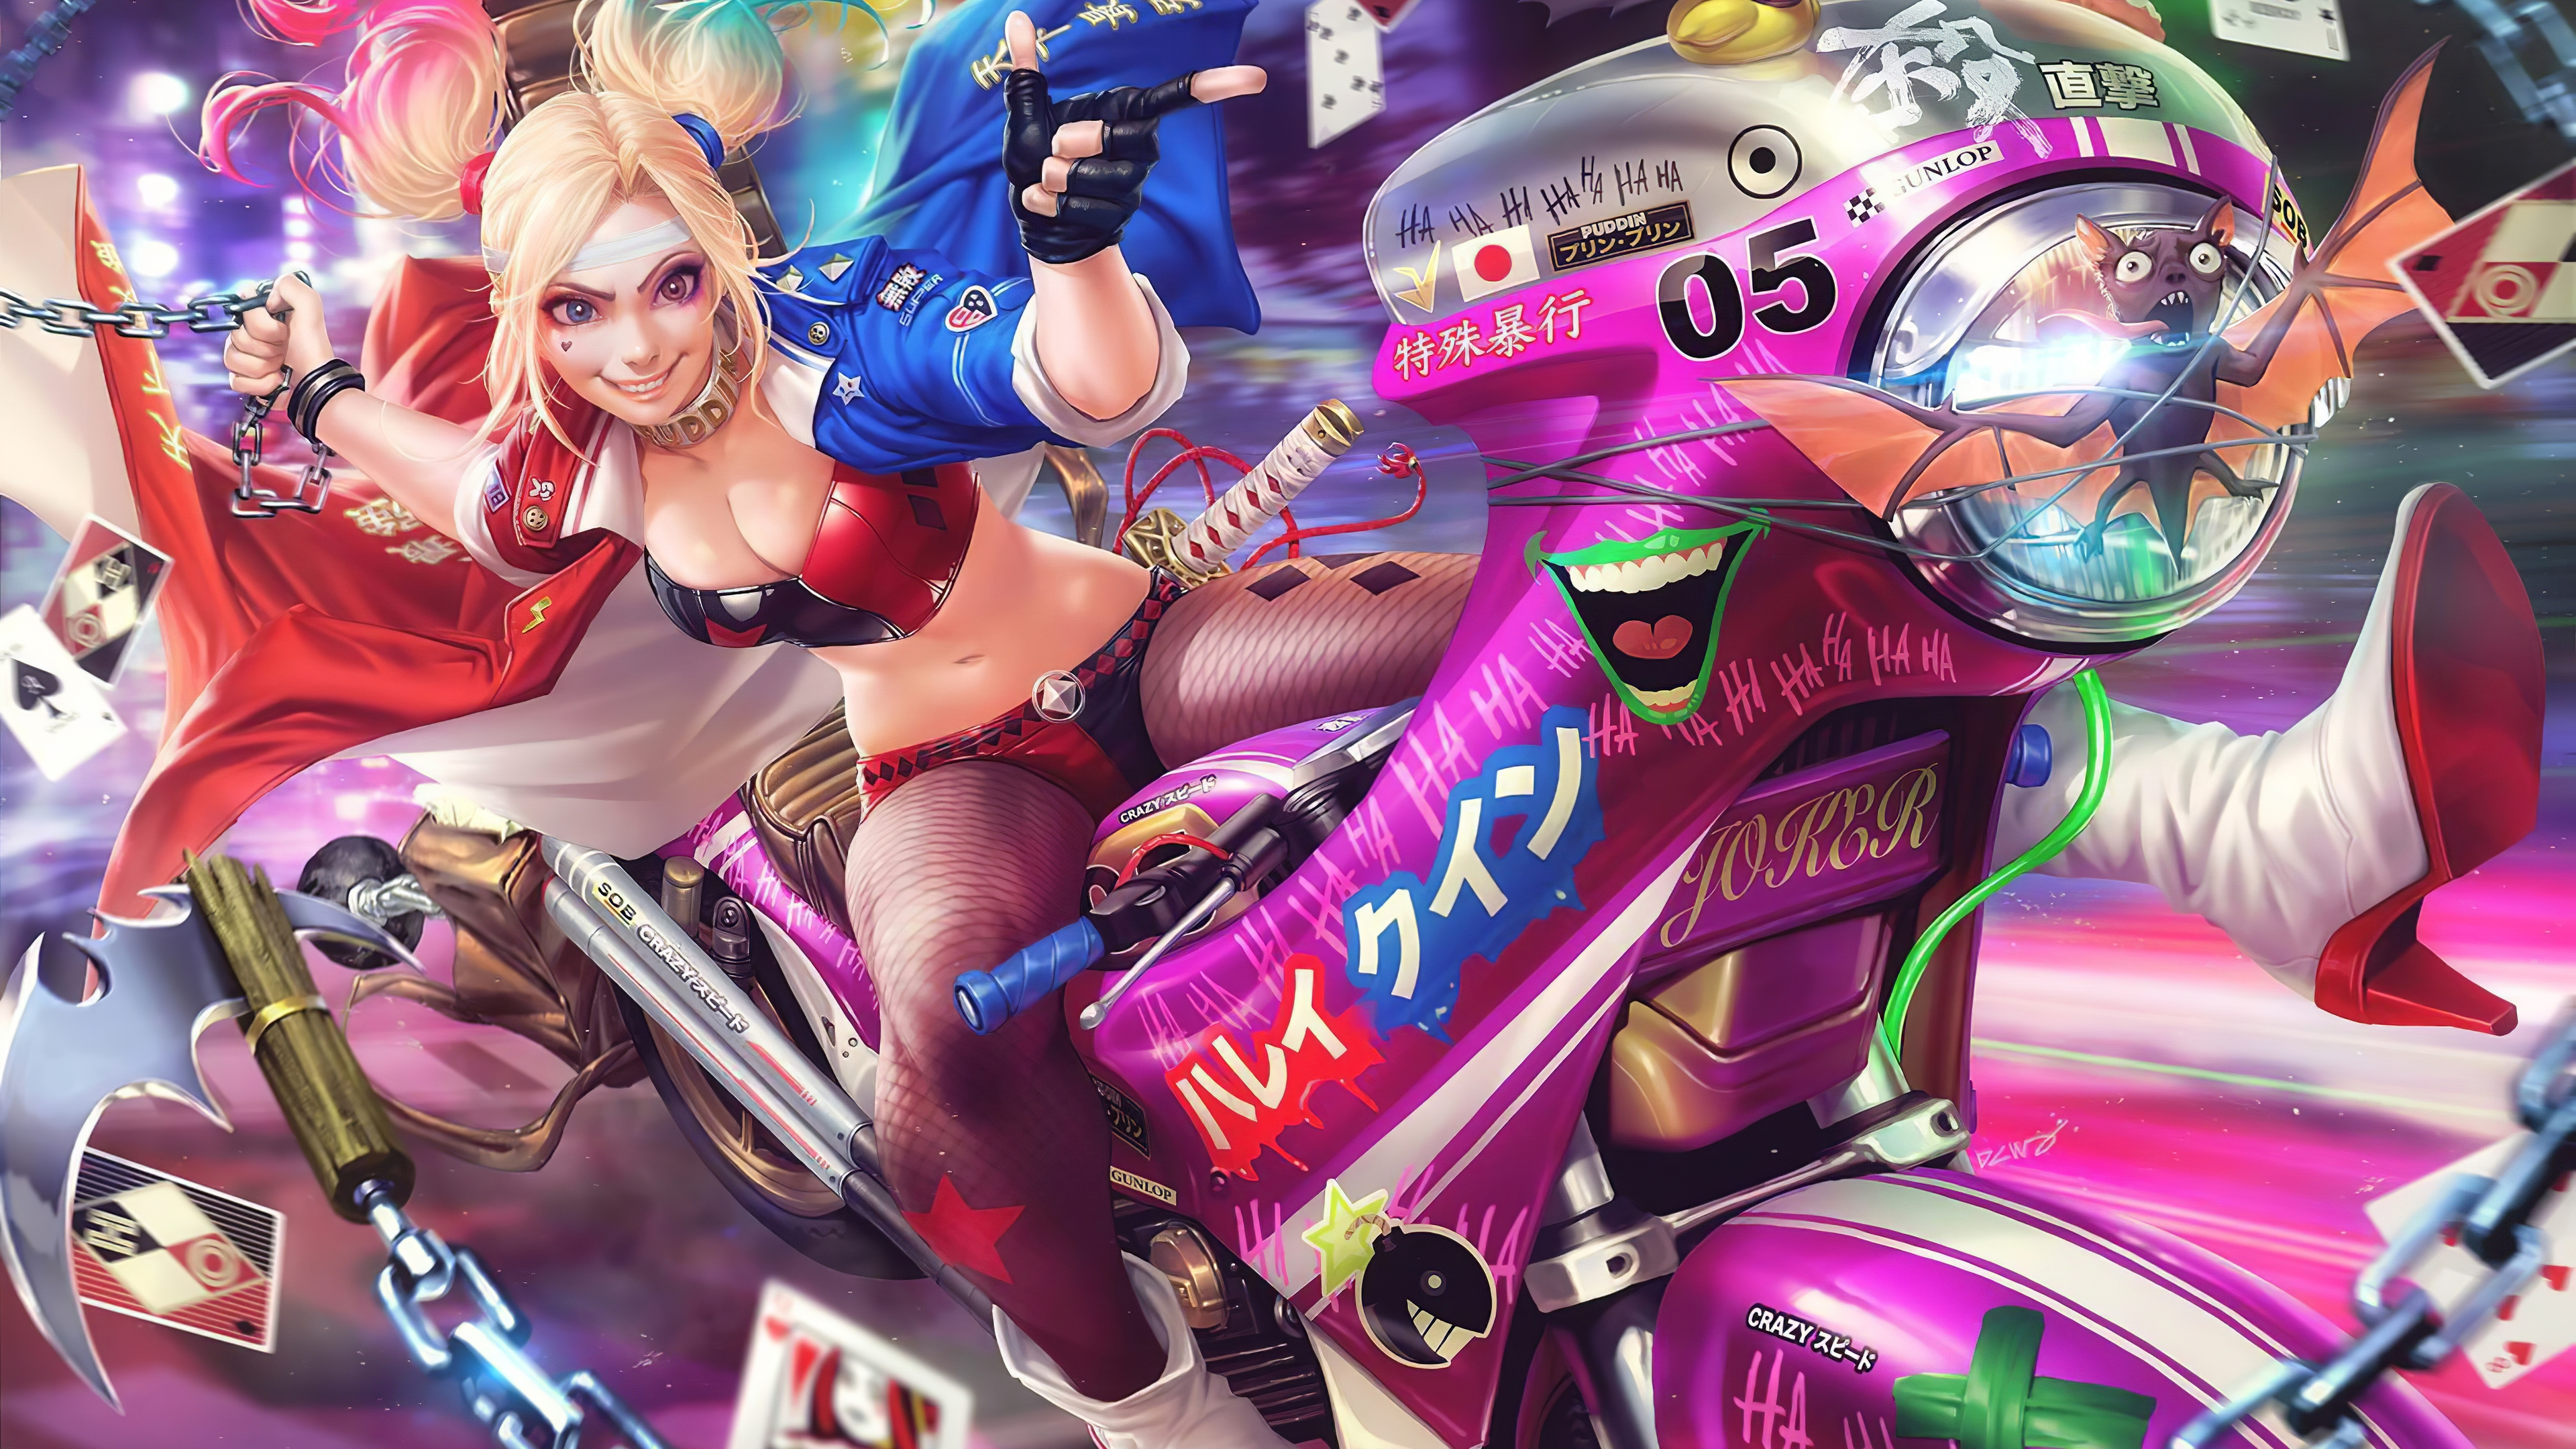 11 Wallpaper Harley Quinn Anime Anime Top Wallpaper